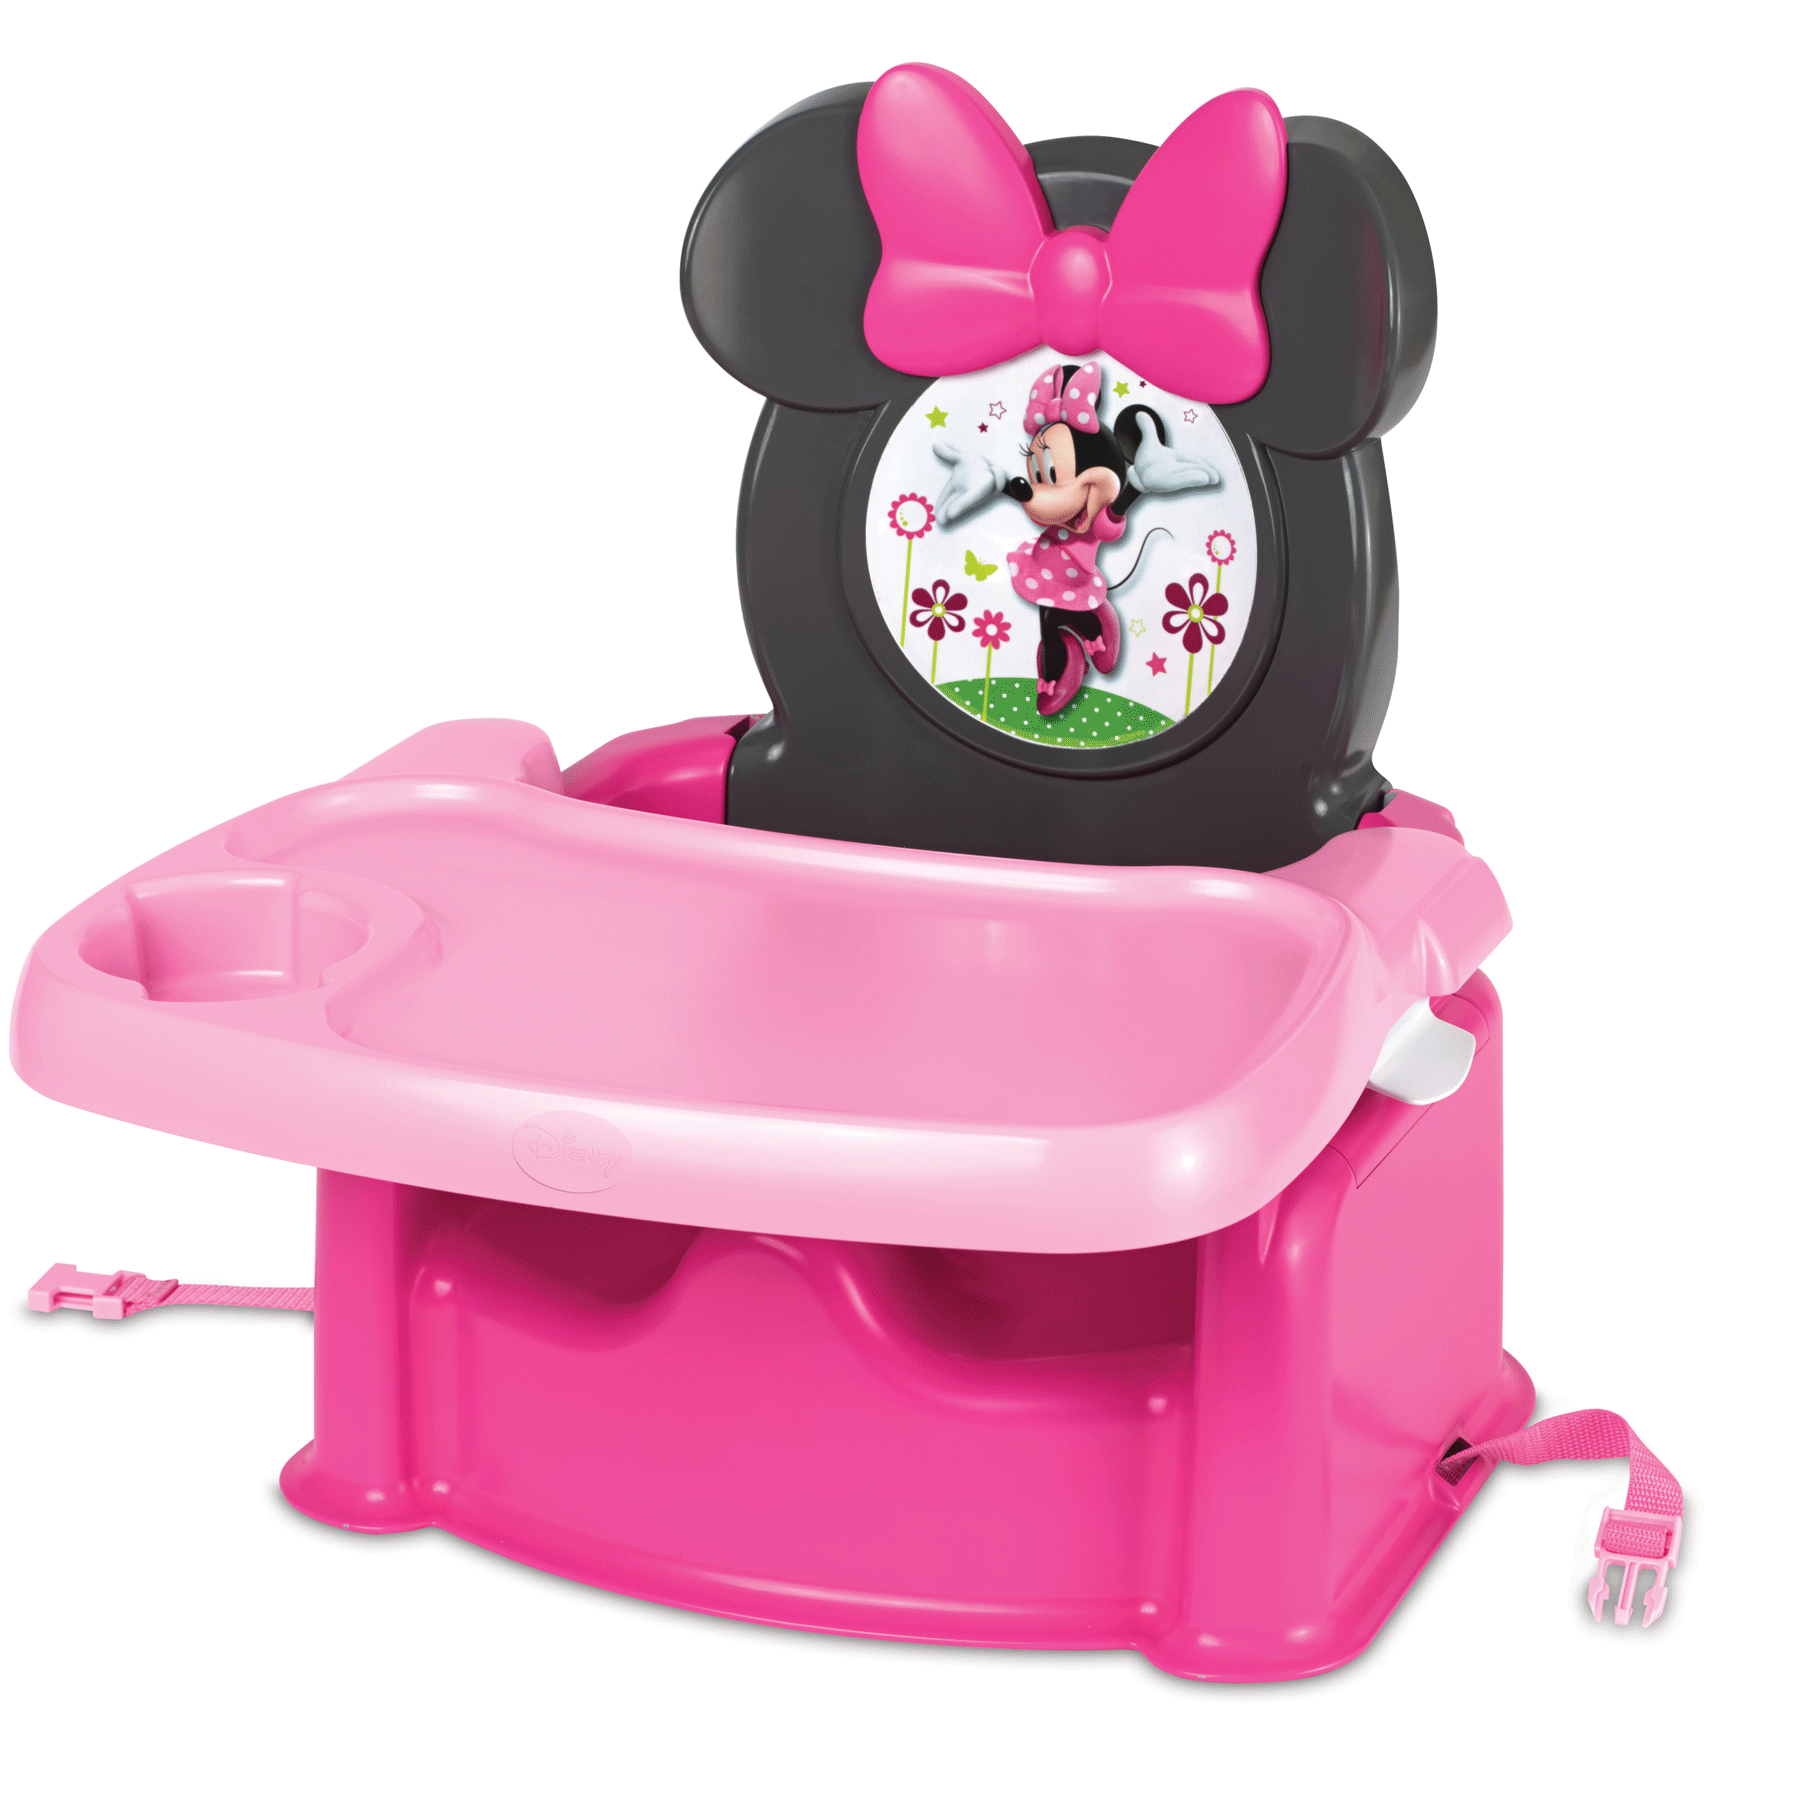 Minnie Mouse Convertible Car Seat Baby Booster Seat Minnie